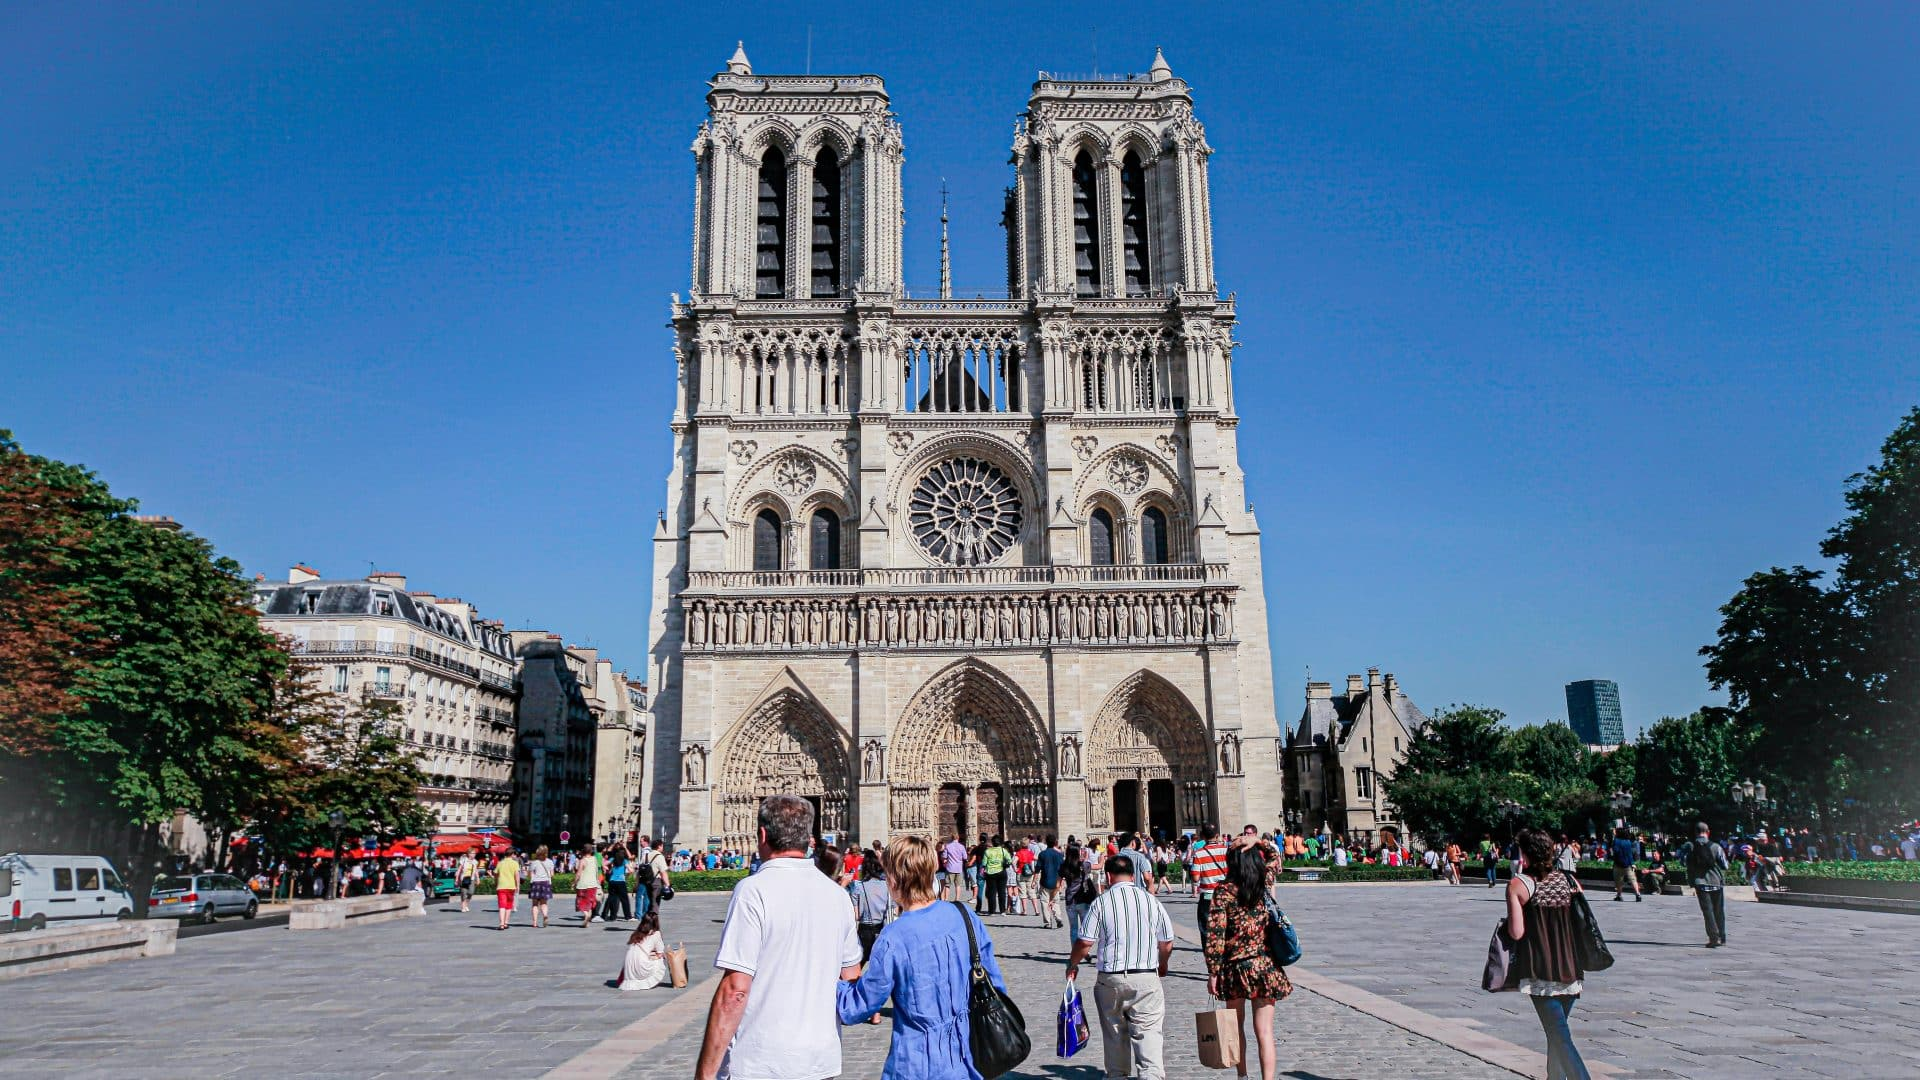 Notre Dame Cathedral facts